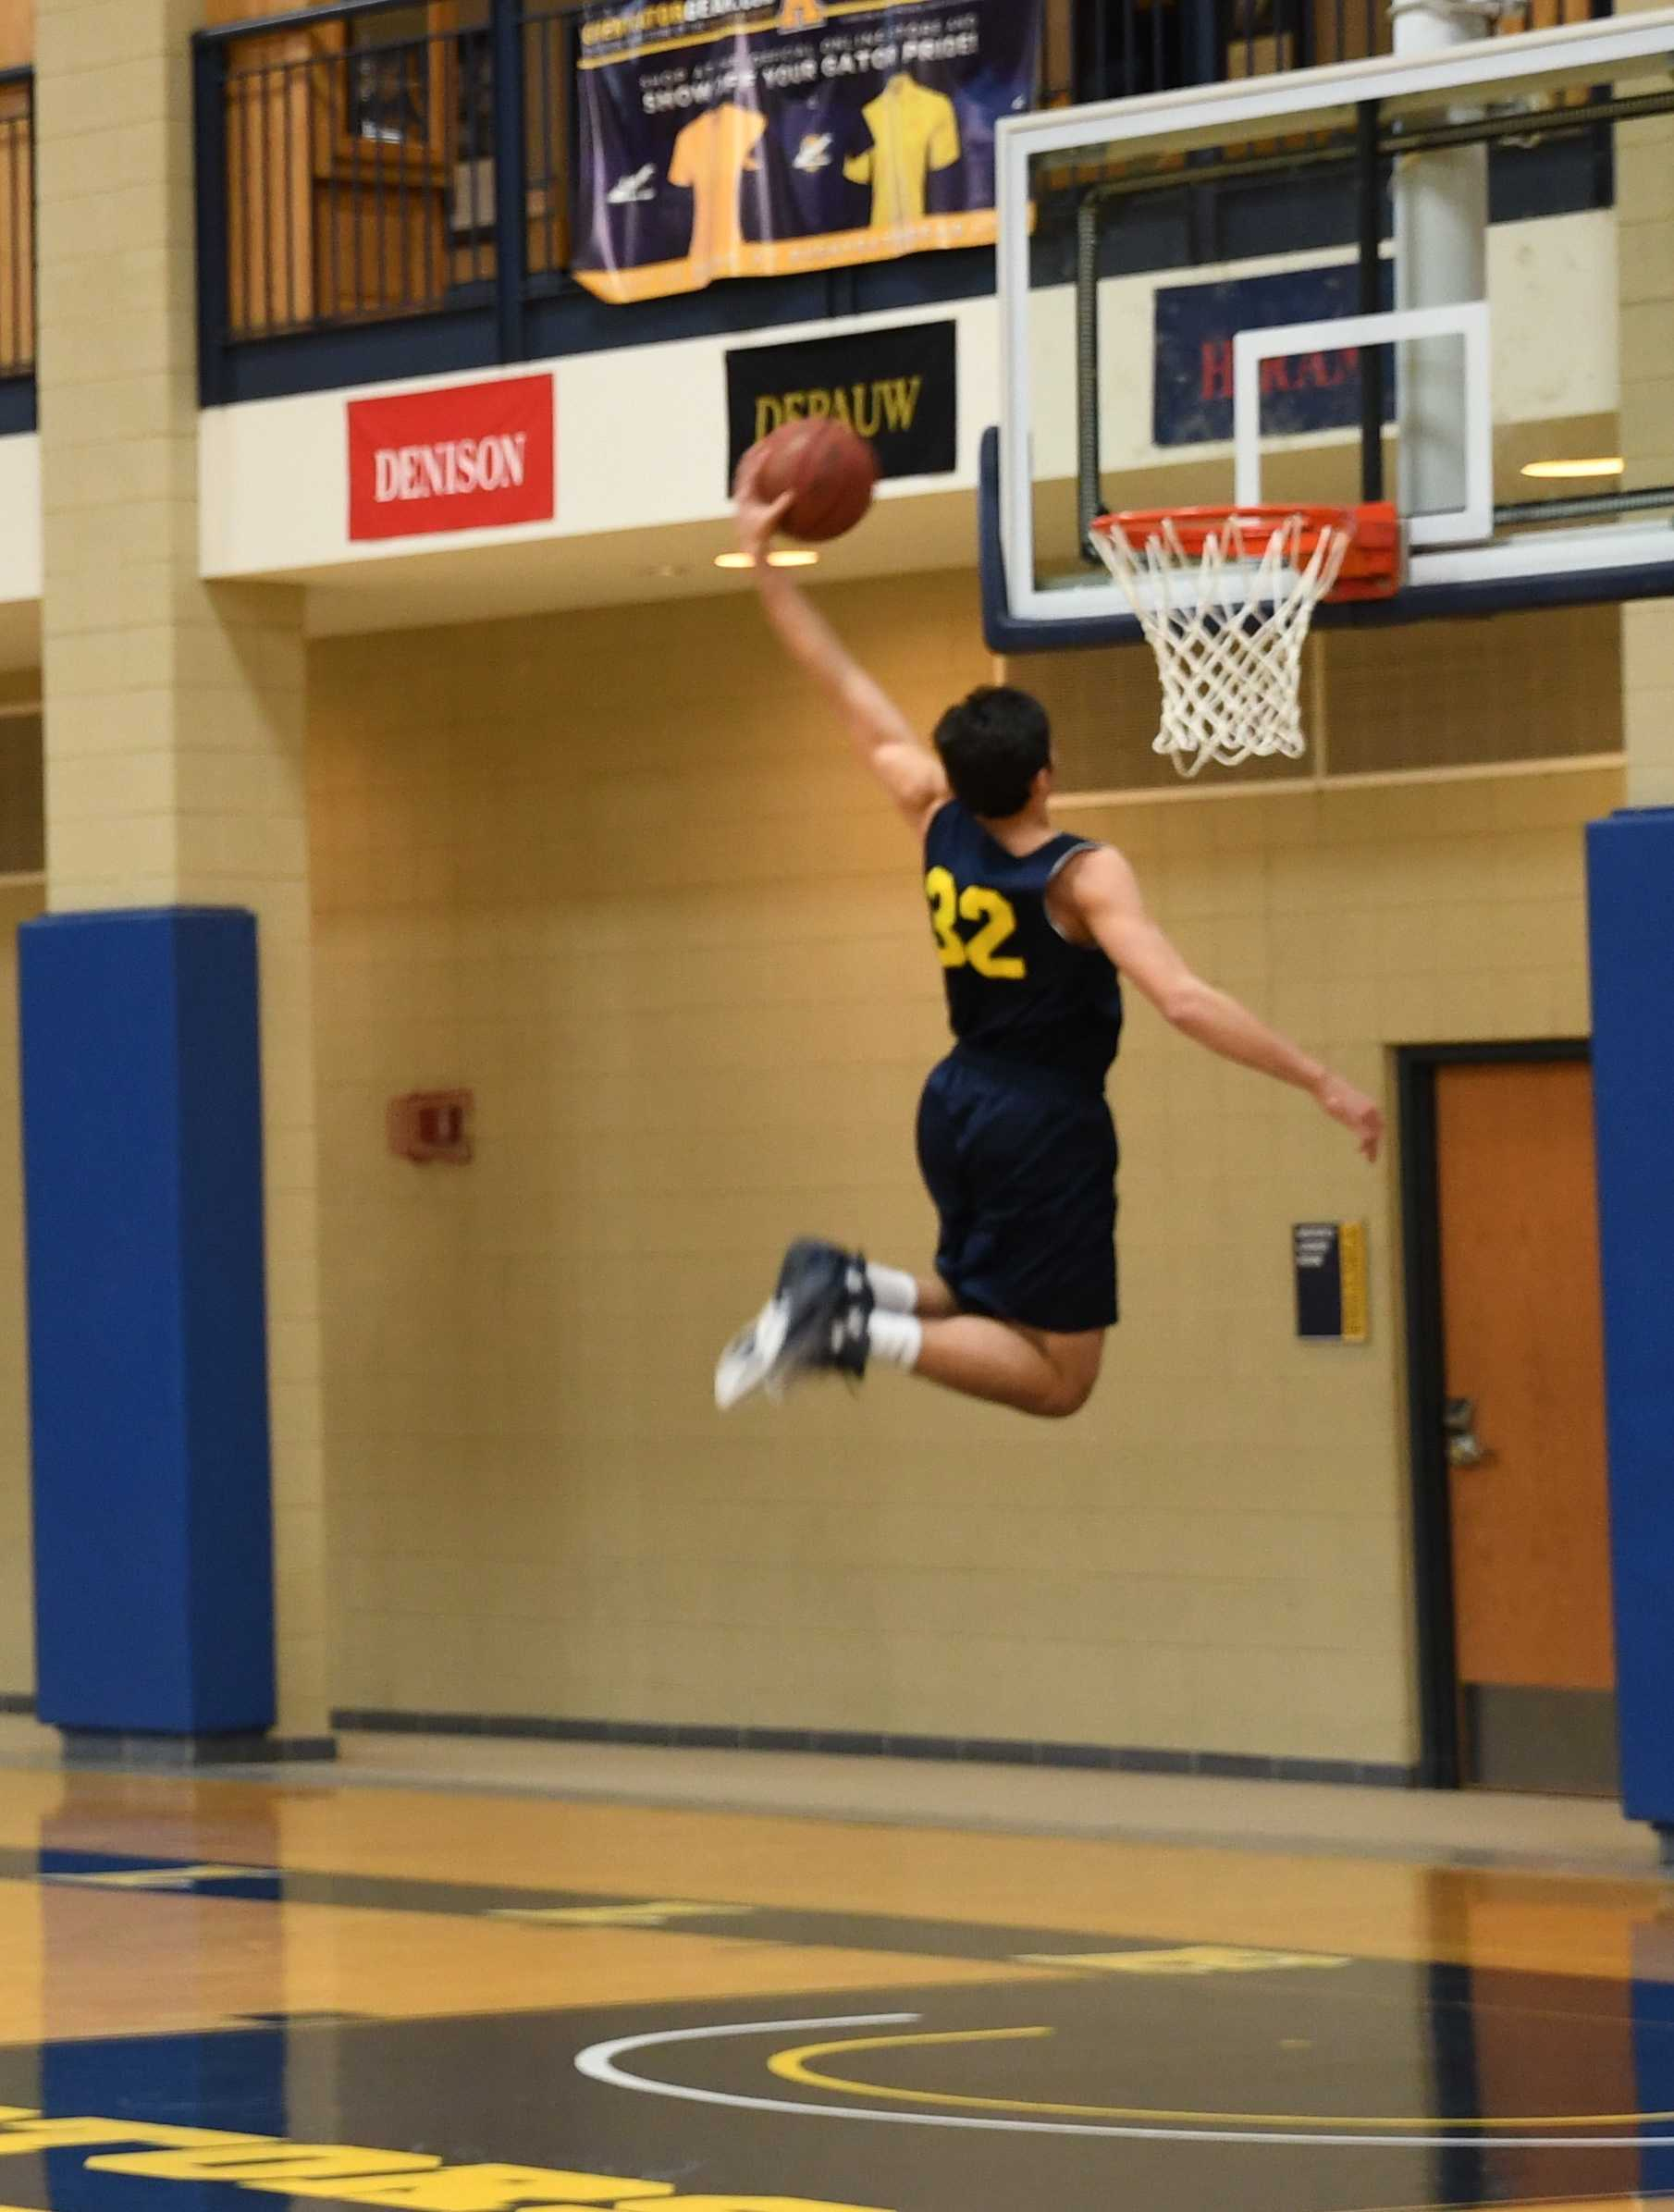 Issac Manton, '20, a guard on the men's team, works on his lay up during practice on Wednesday, Feb. 1, 2017.